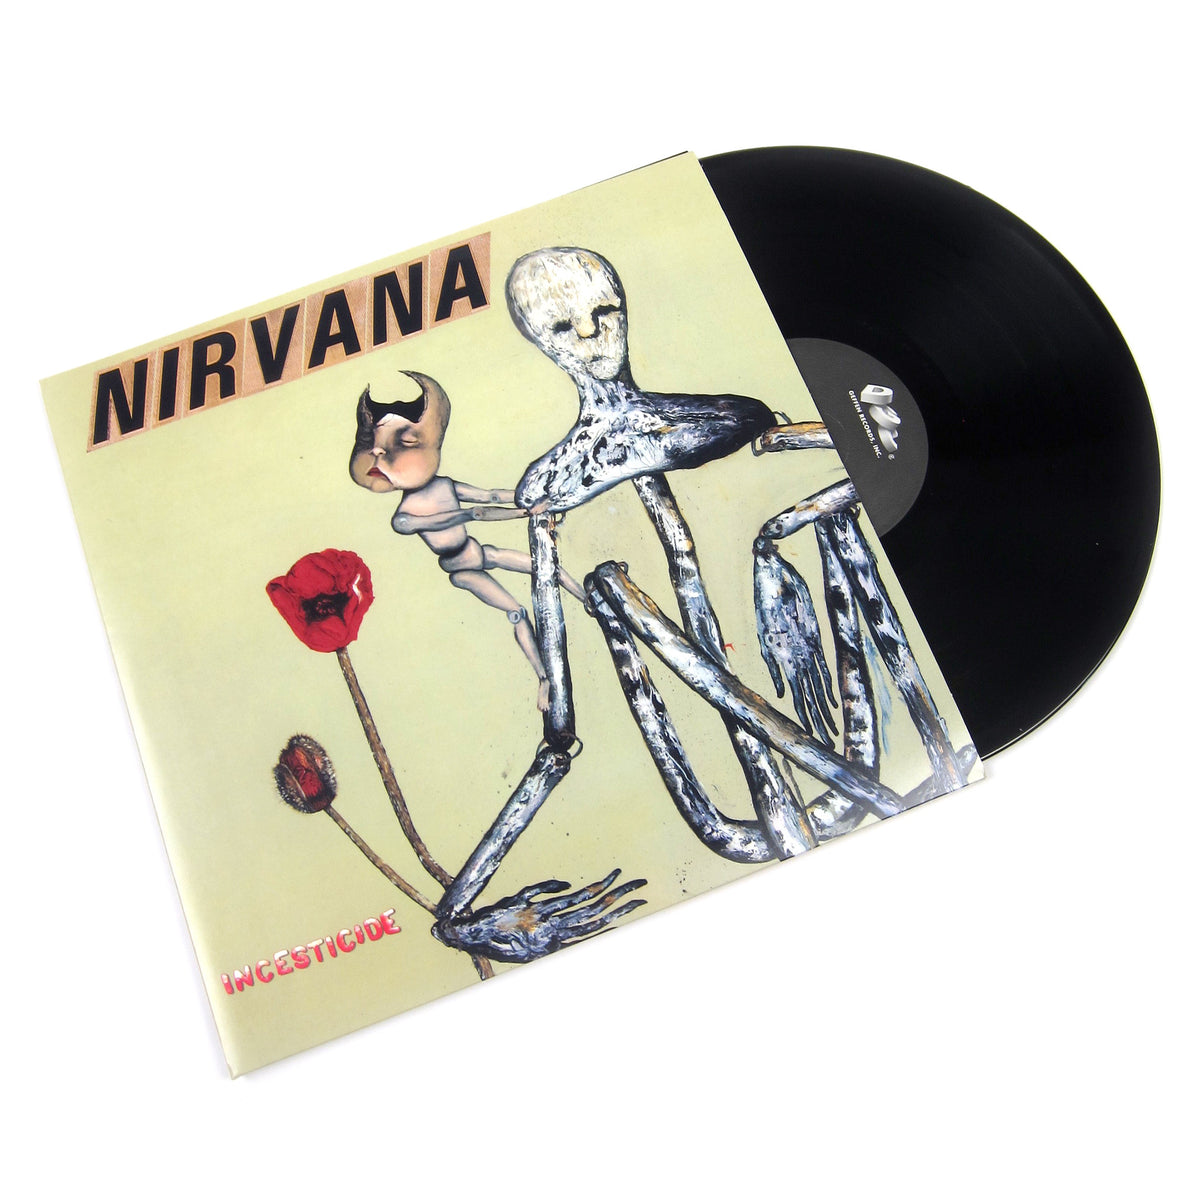 Nirvana: Incesticide (180g, 45rpm) Vinyl 2LP